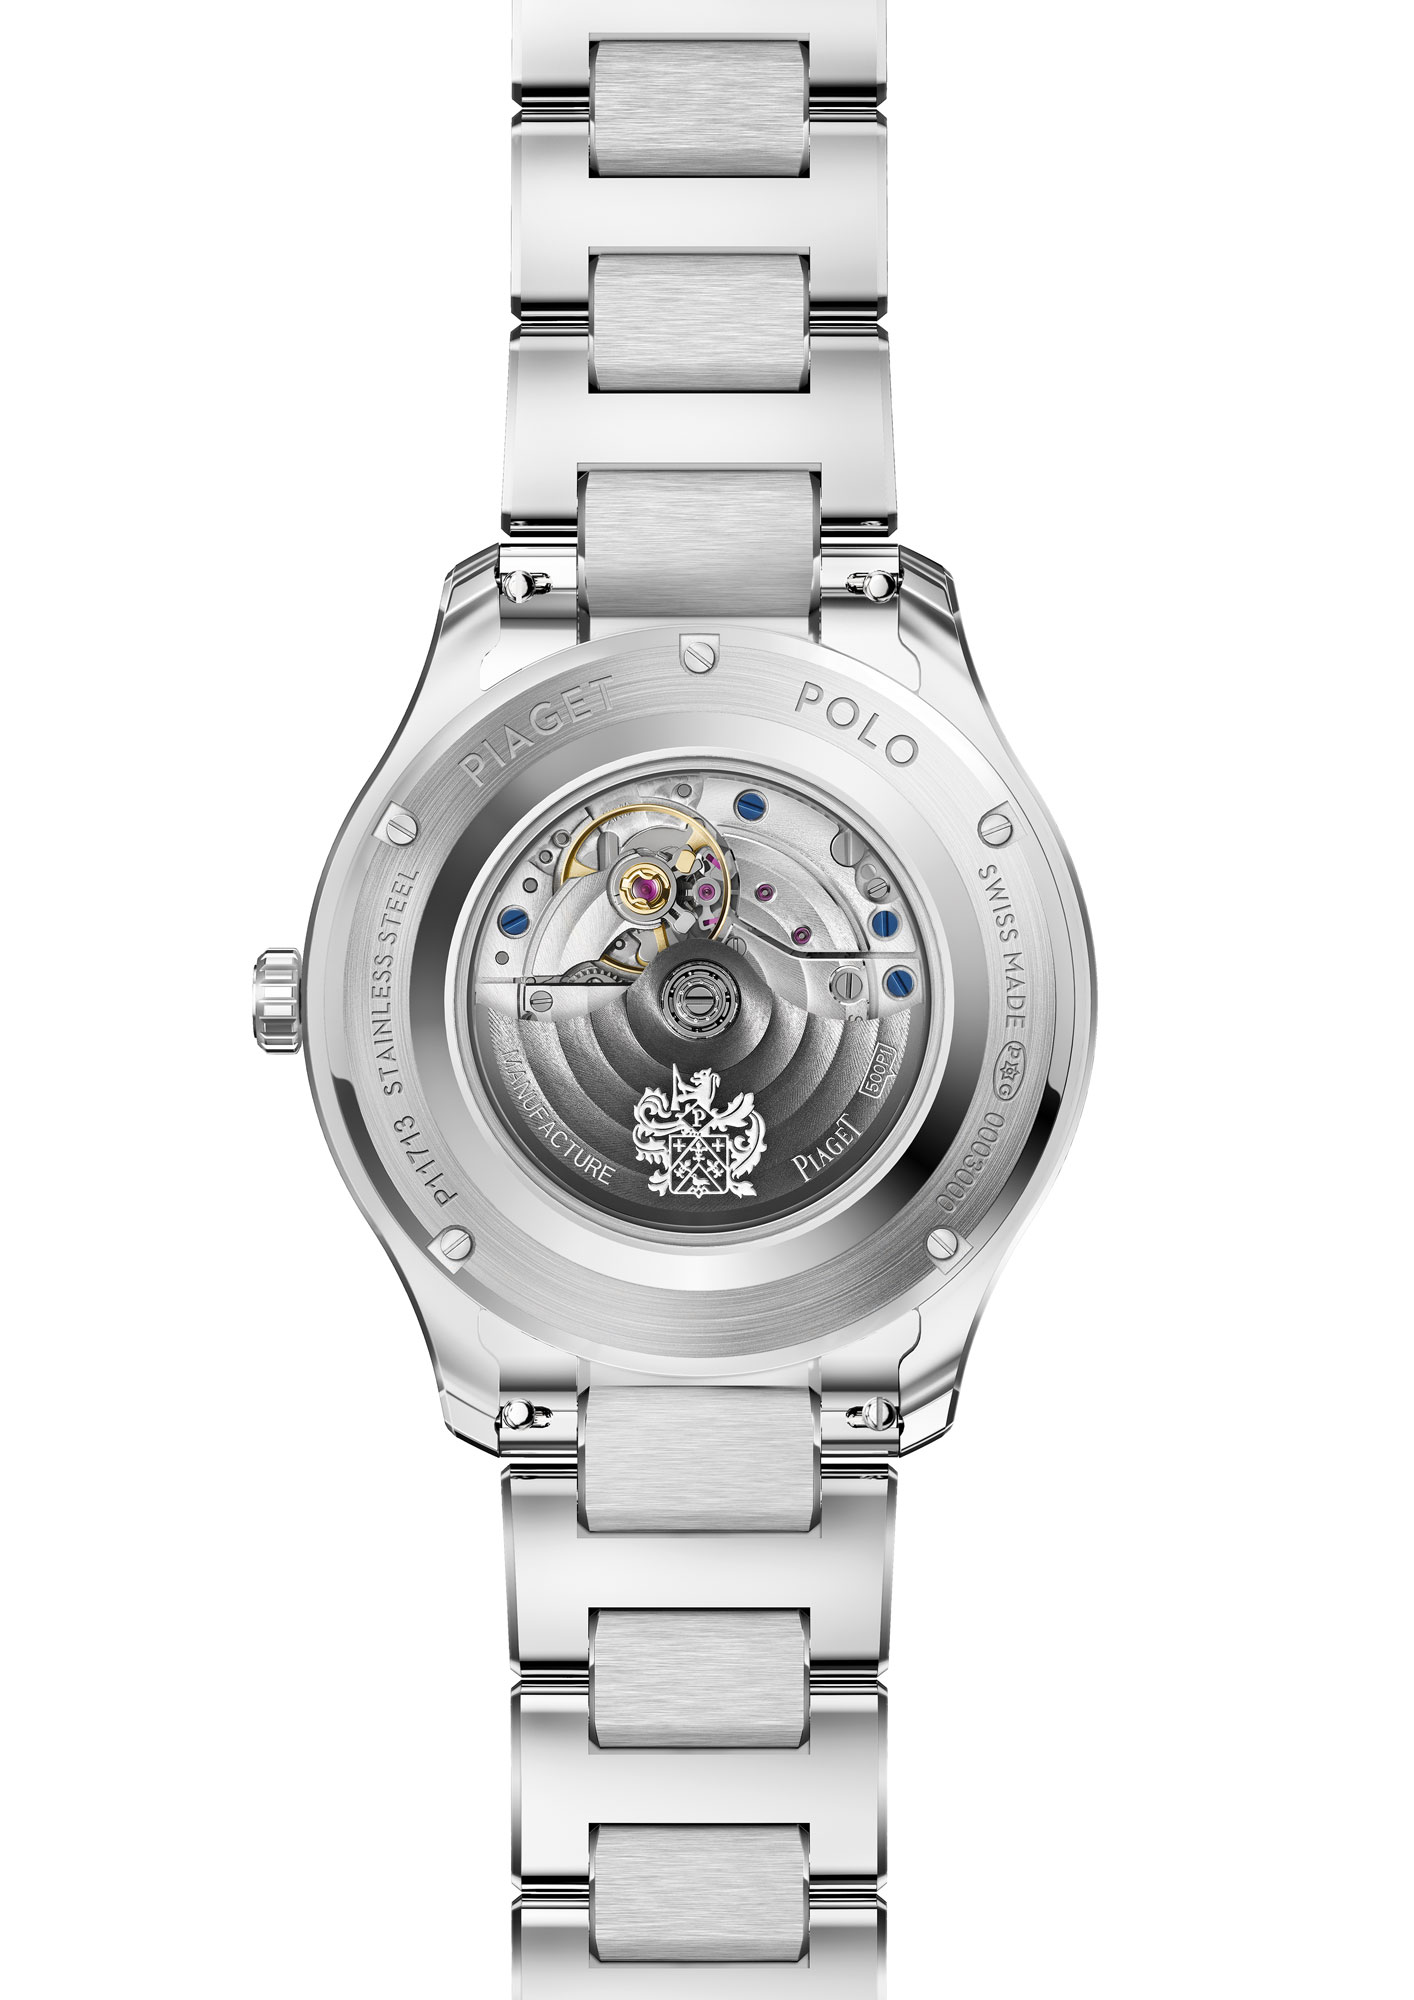 Piaget Polo 36mm Steel, G0A46019, back